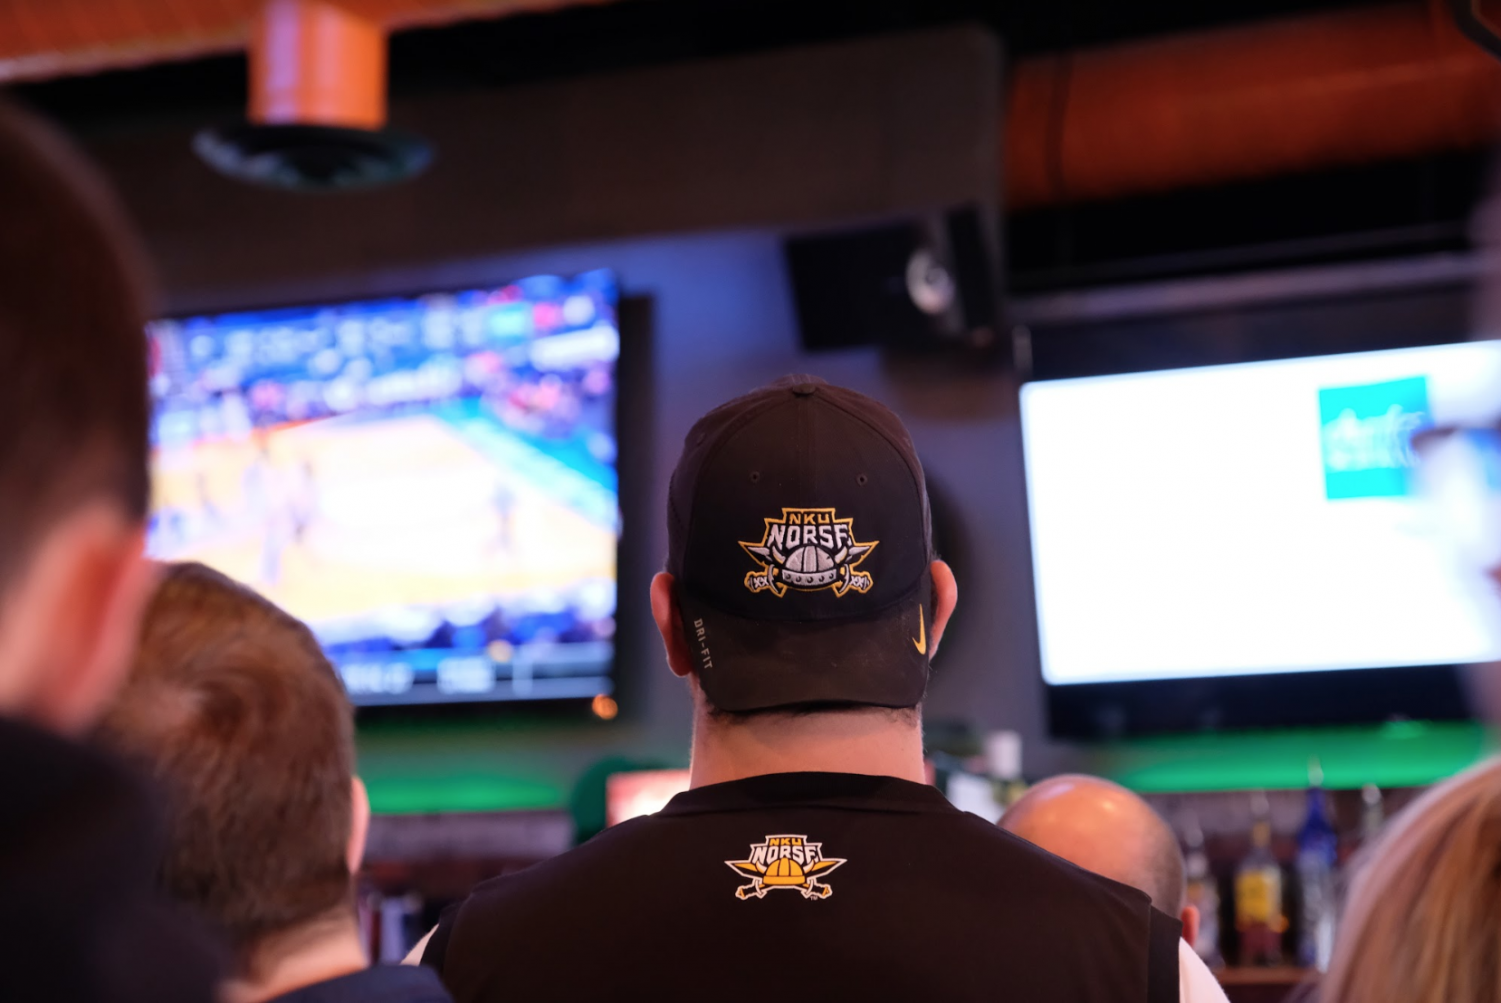 NKU men's basketball fans watch the Norse take on the Texas Tech Raiders in the first round of March Madness.